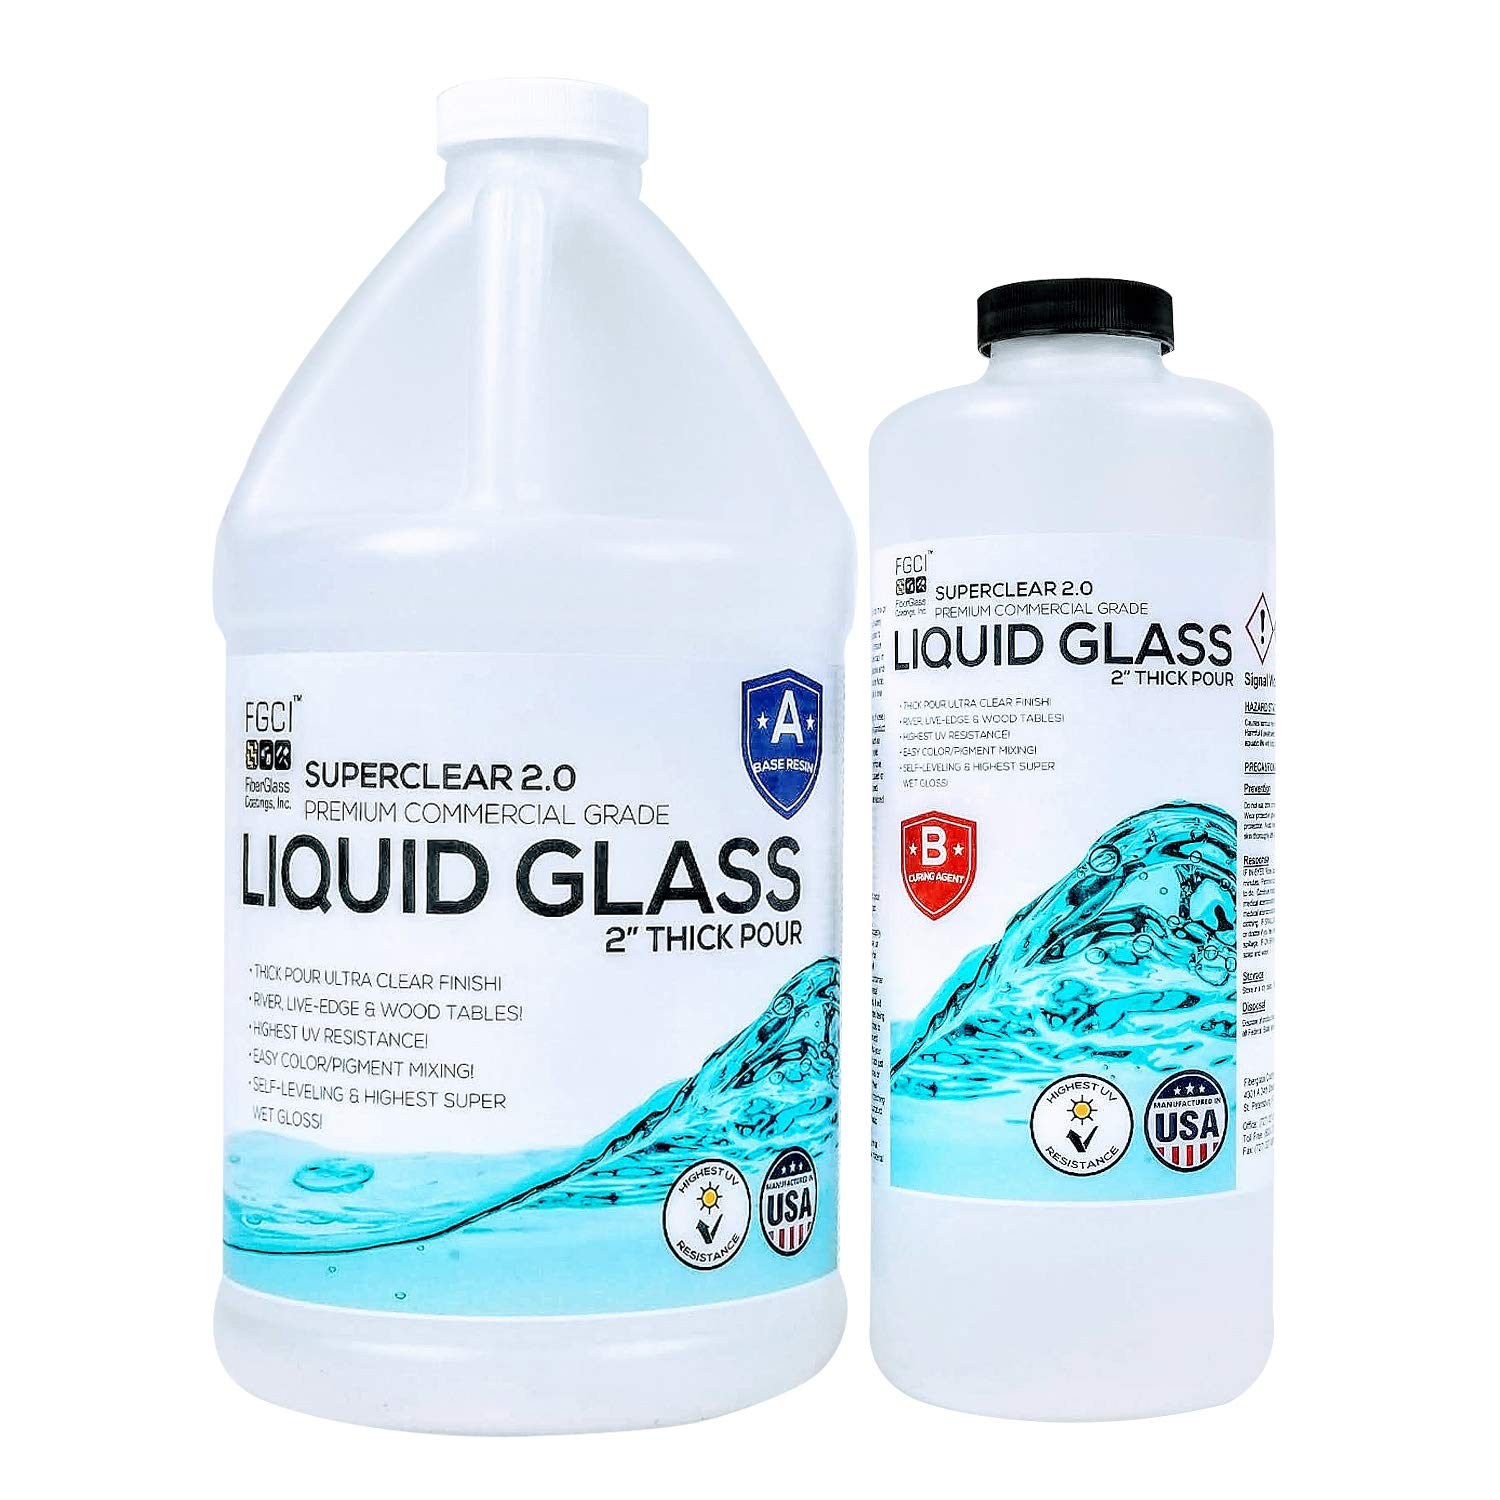 Epoxy Resin Crystal Clear Liquid Glass - Pour 2 Inches Plus at One Time for Live Edge and River Tables - ¾ Gallon Clear Epoxy Resin Kit